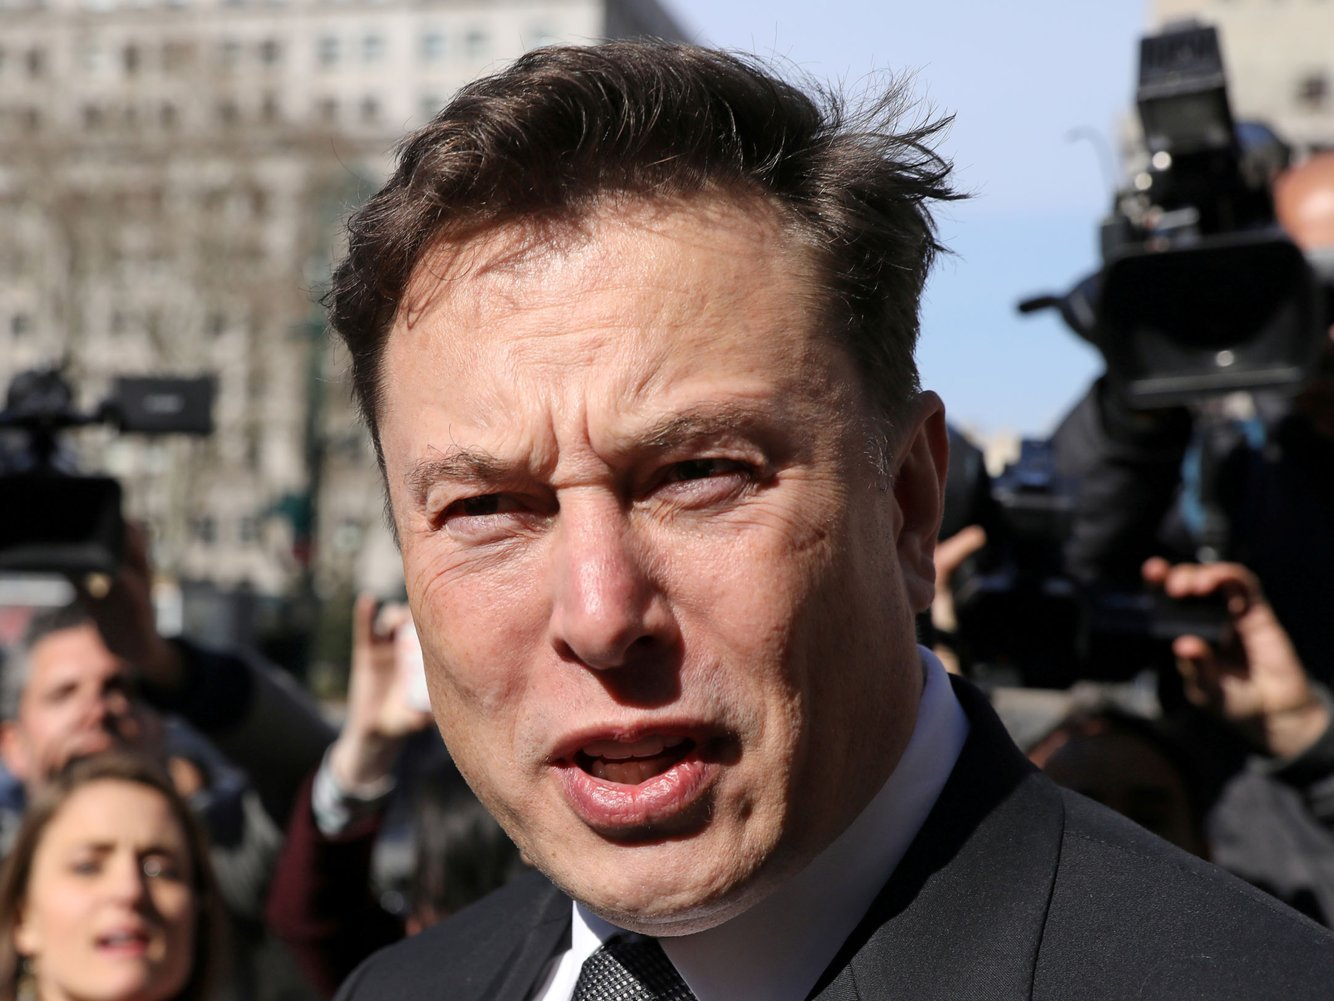 Elon Musk says he didn't intend to call Vernon Unsworth a pedophile but also worried he might be 'another Jeffrey Epstein'